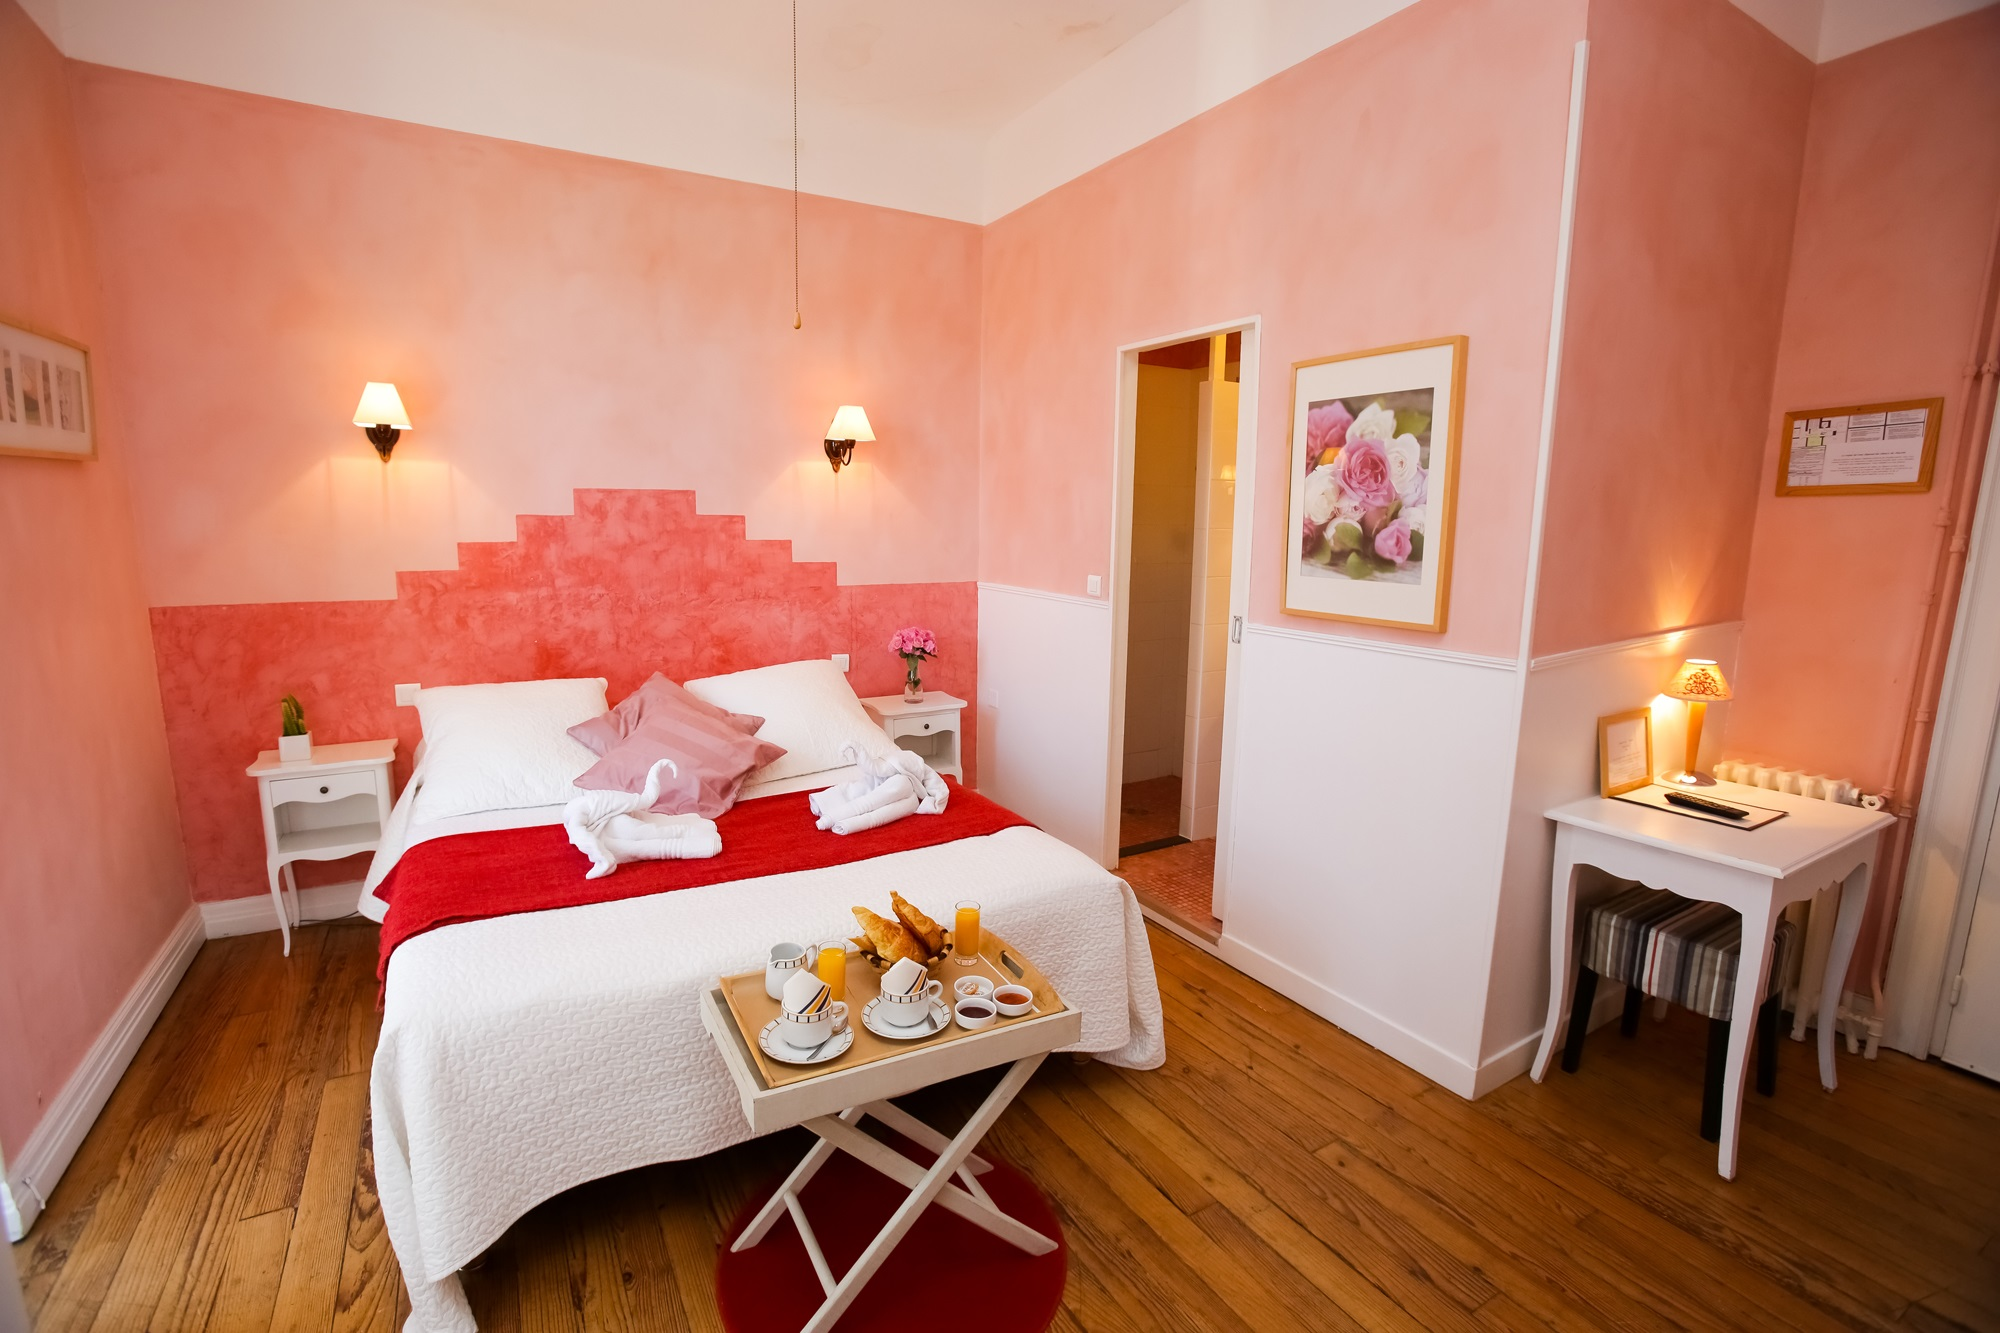 Chambres hotes biarritz immdiate with chambres hotes for Chambre d hote biarritz